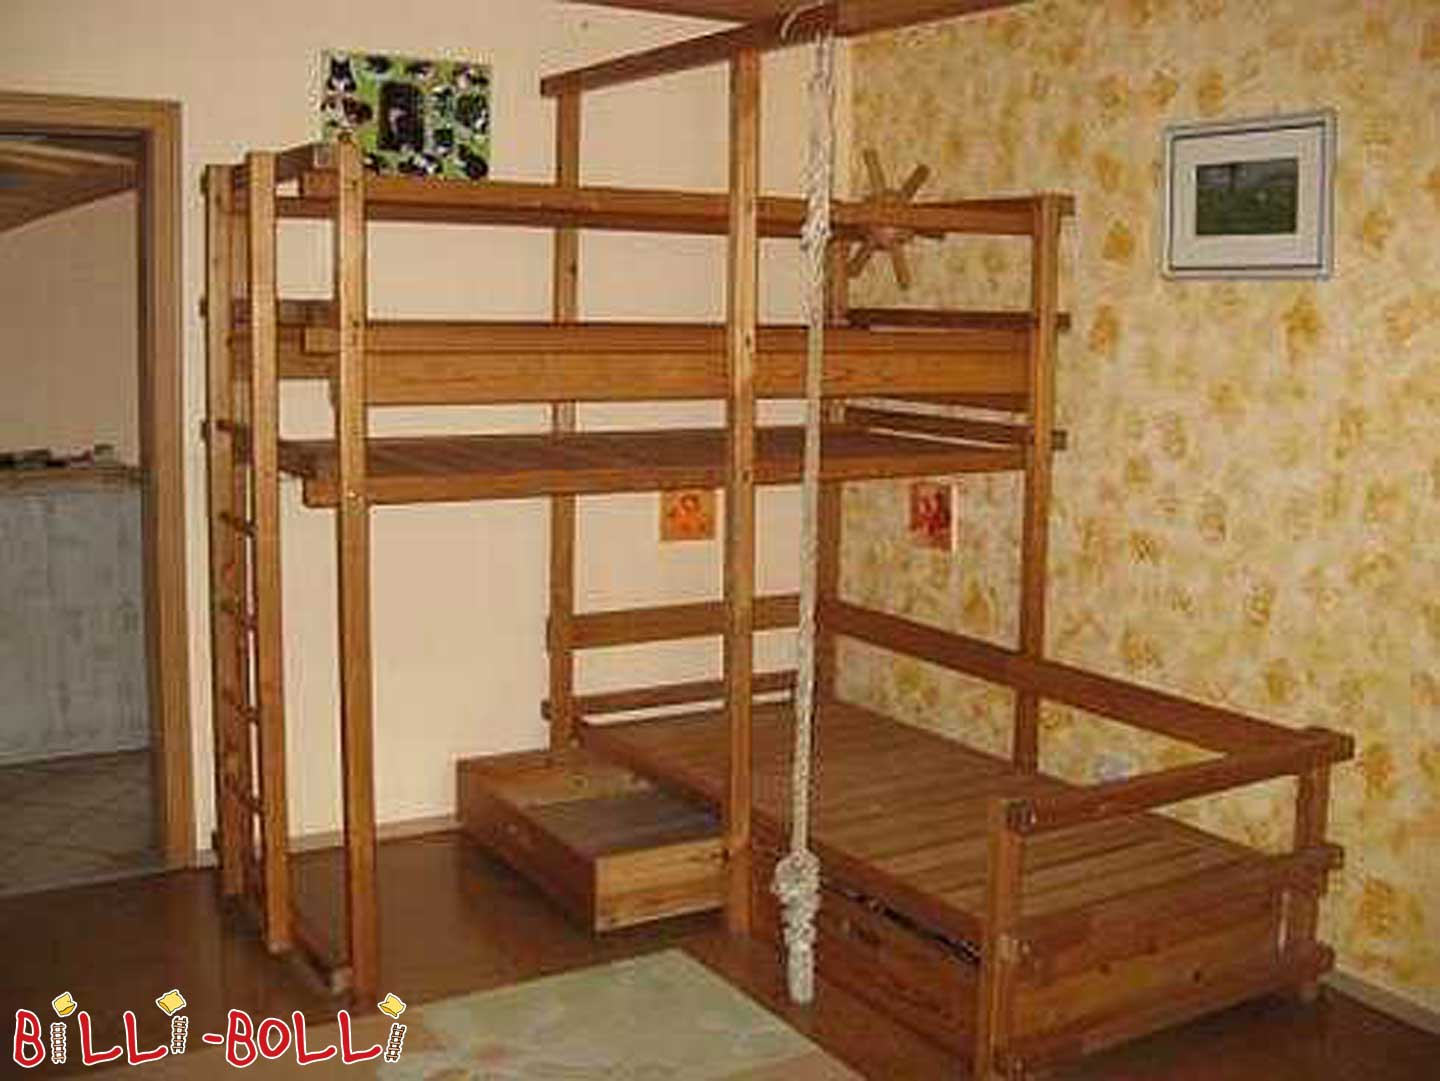 secondhand seite 57 billi bolli kinderm bel. Black Bedroom Furniture Sets. Home Design Ideas